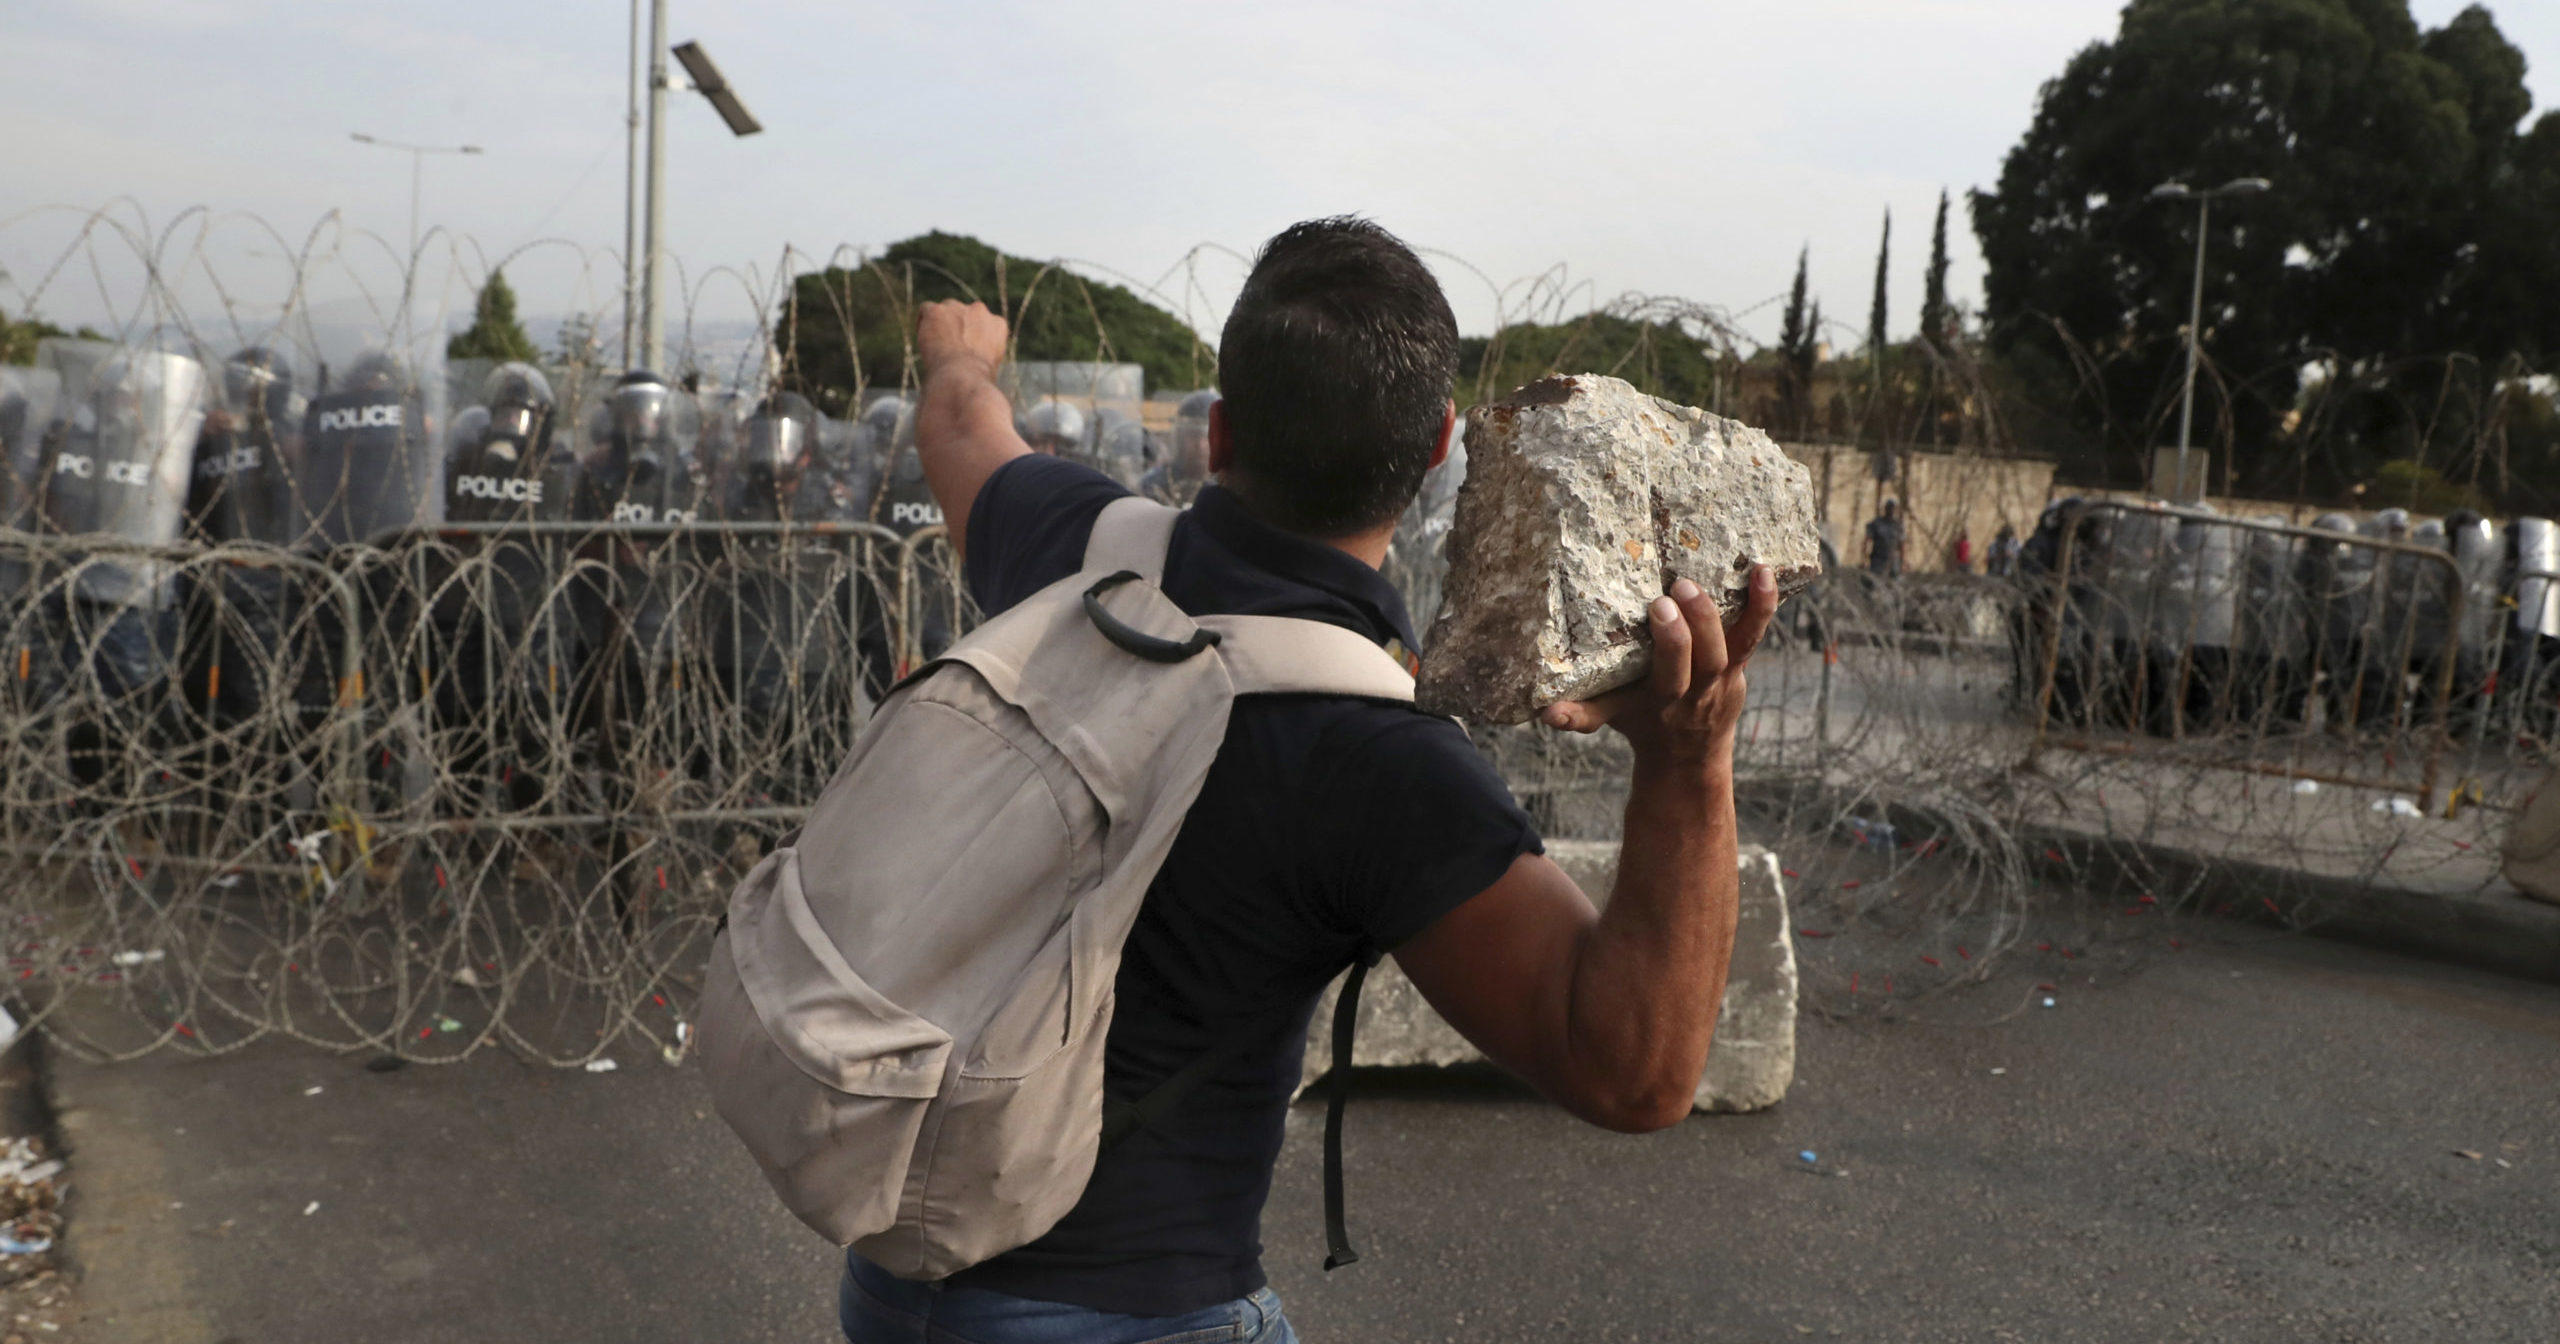 A protester throws a stone towards riot police during a protest against French President Macron's comments over Prophet Muhammad caricatures, near the Pine Palace, which is the residence of the French ambassador, in Beirut, Lebanon on Friday.